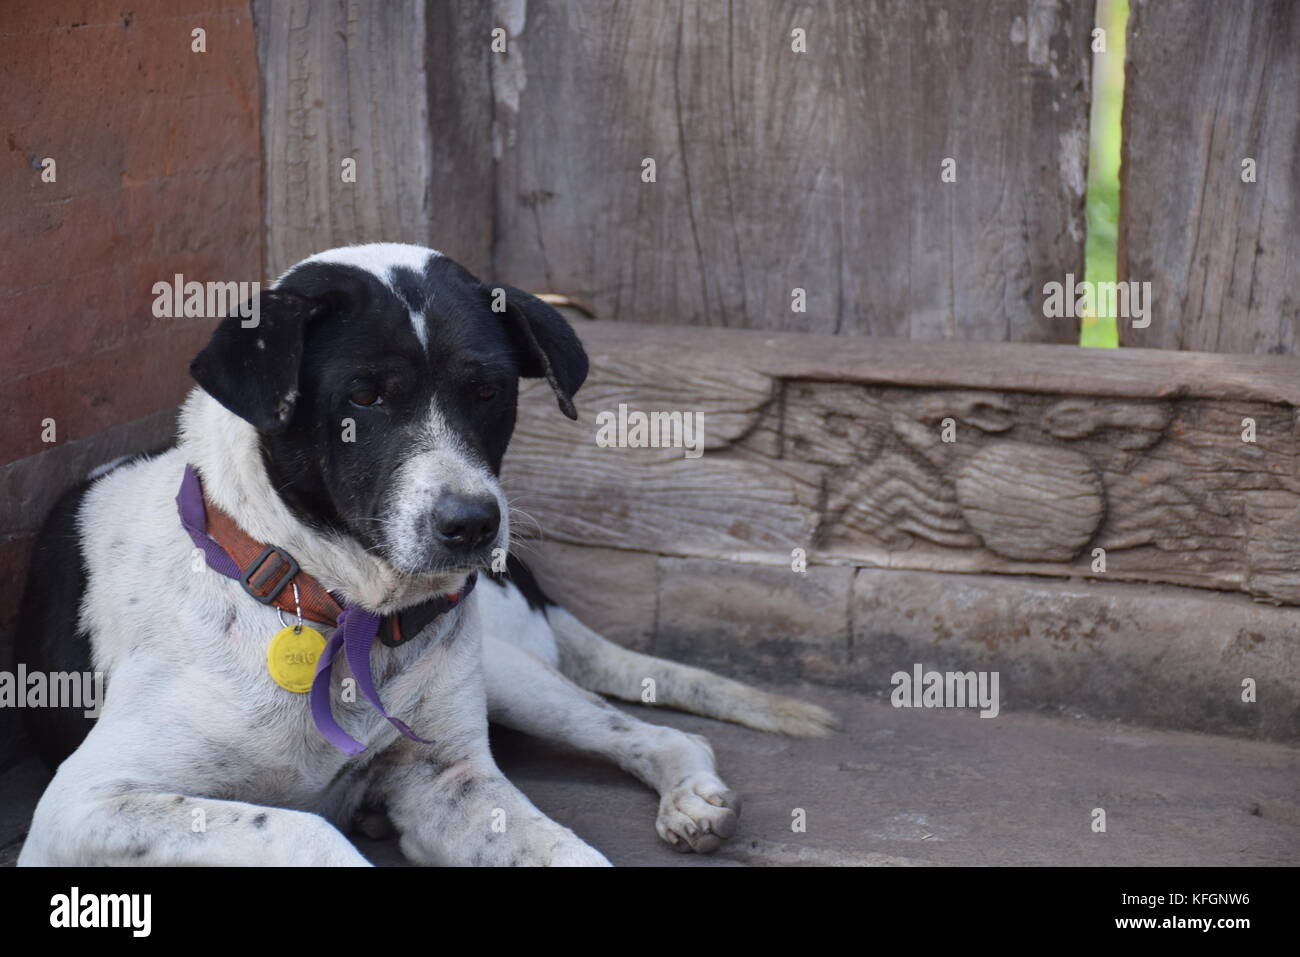 A black and white dog near a door inside Tenganan Aga aboriginal village in Bali, Indonesia - Stock Image